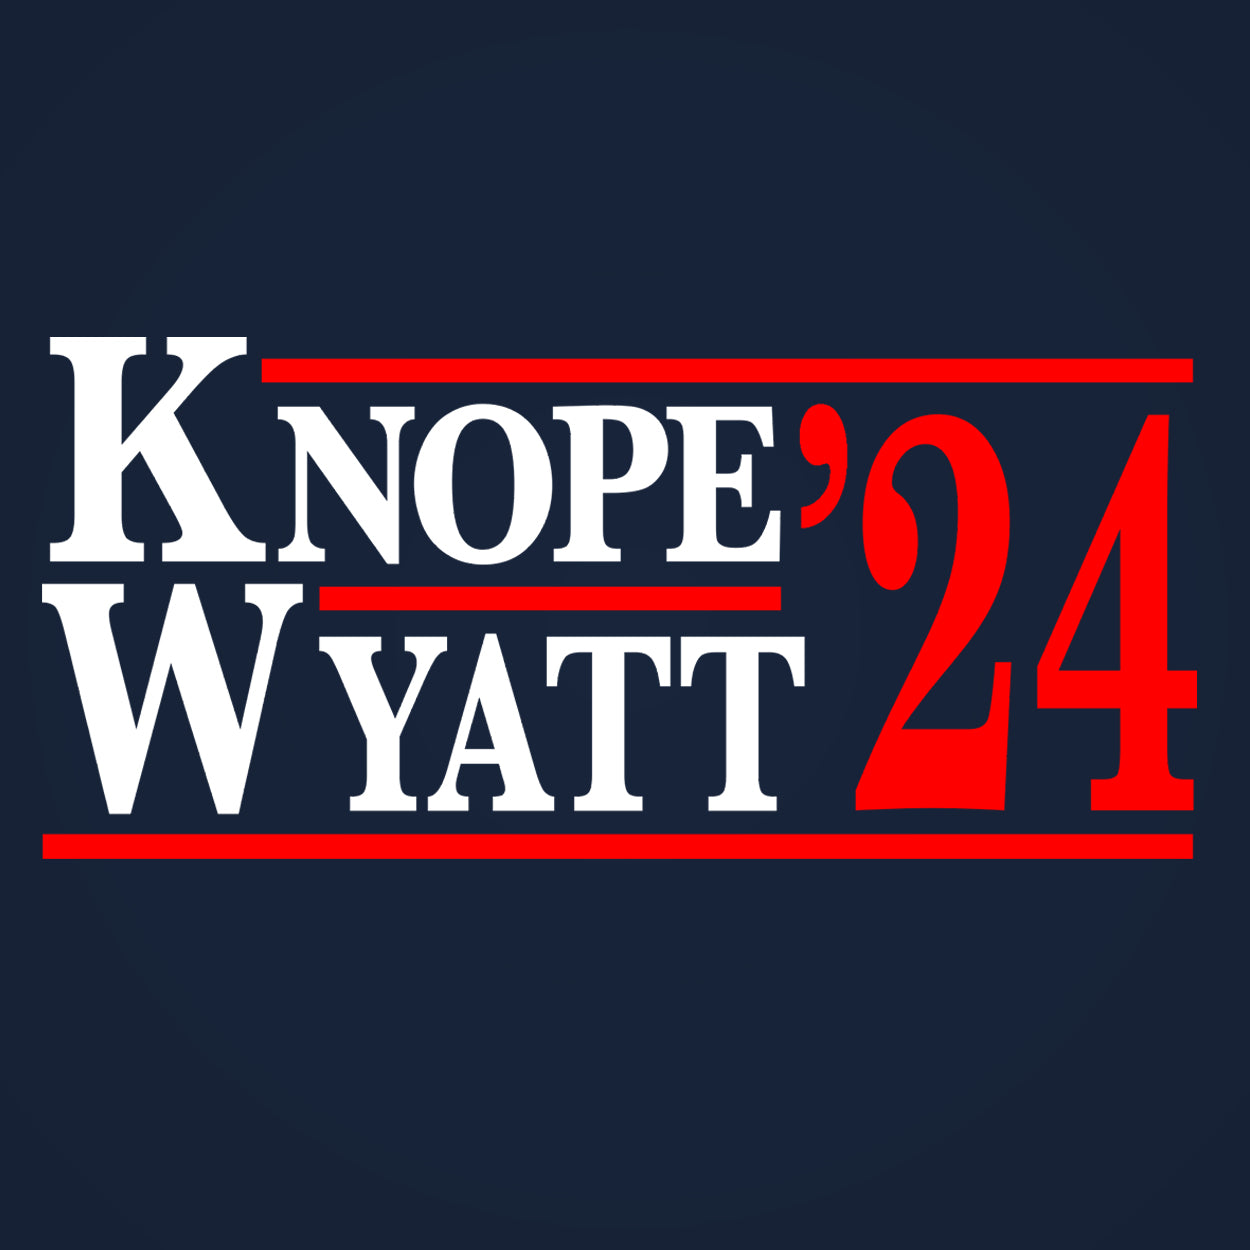 KNOPE WYATT 2024 Election